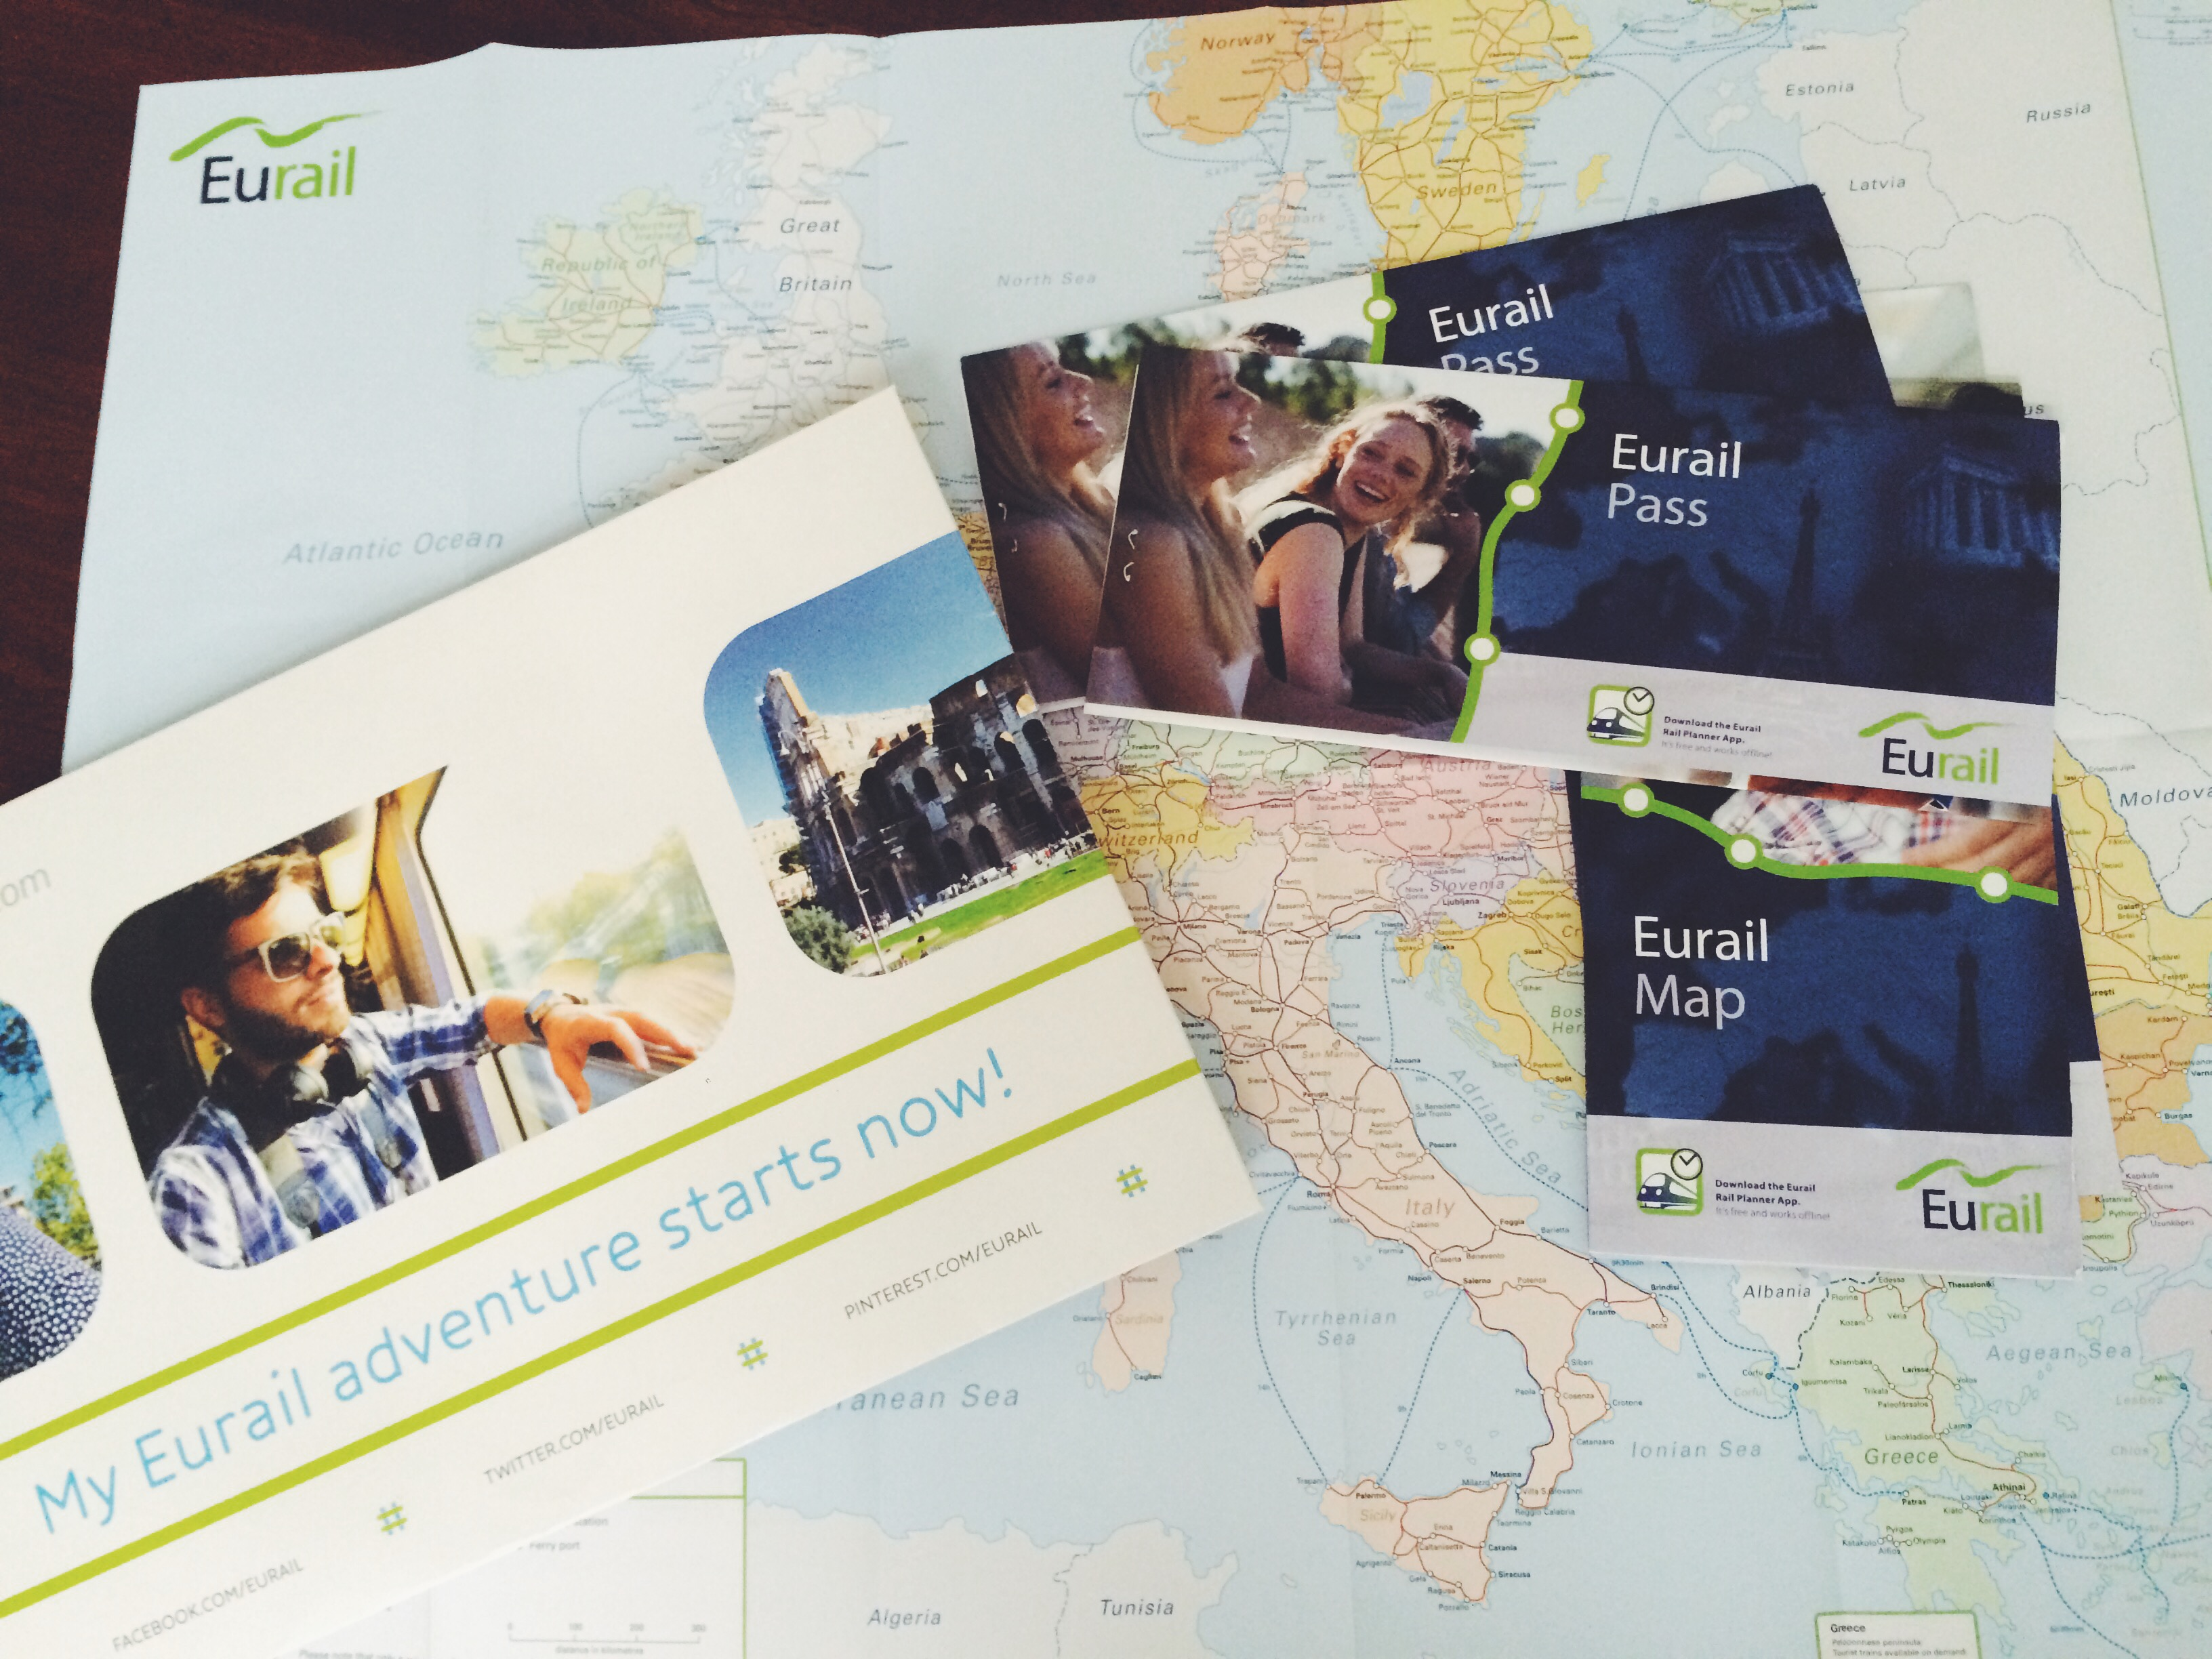 tips for europe by train: on eurail!